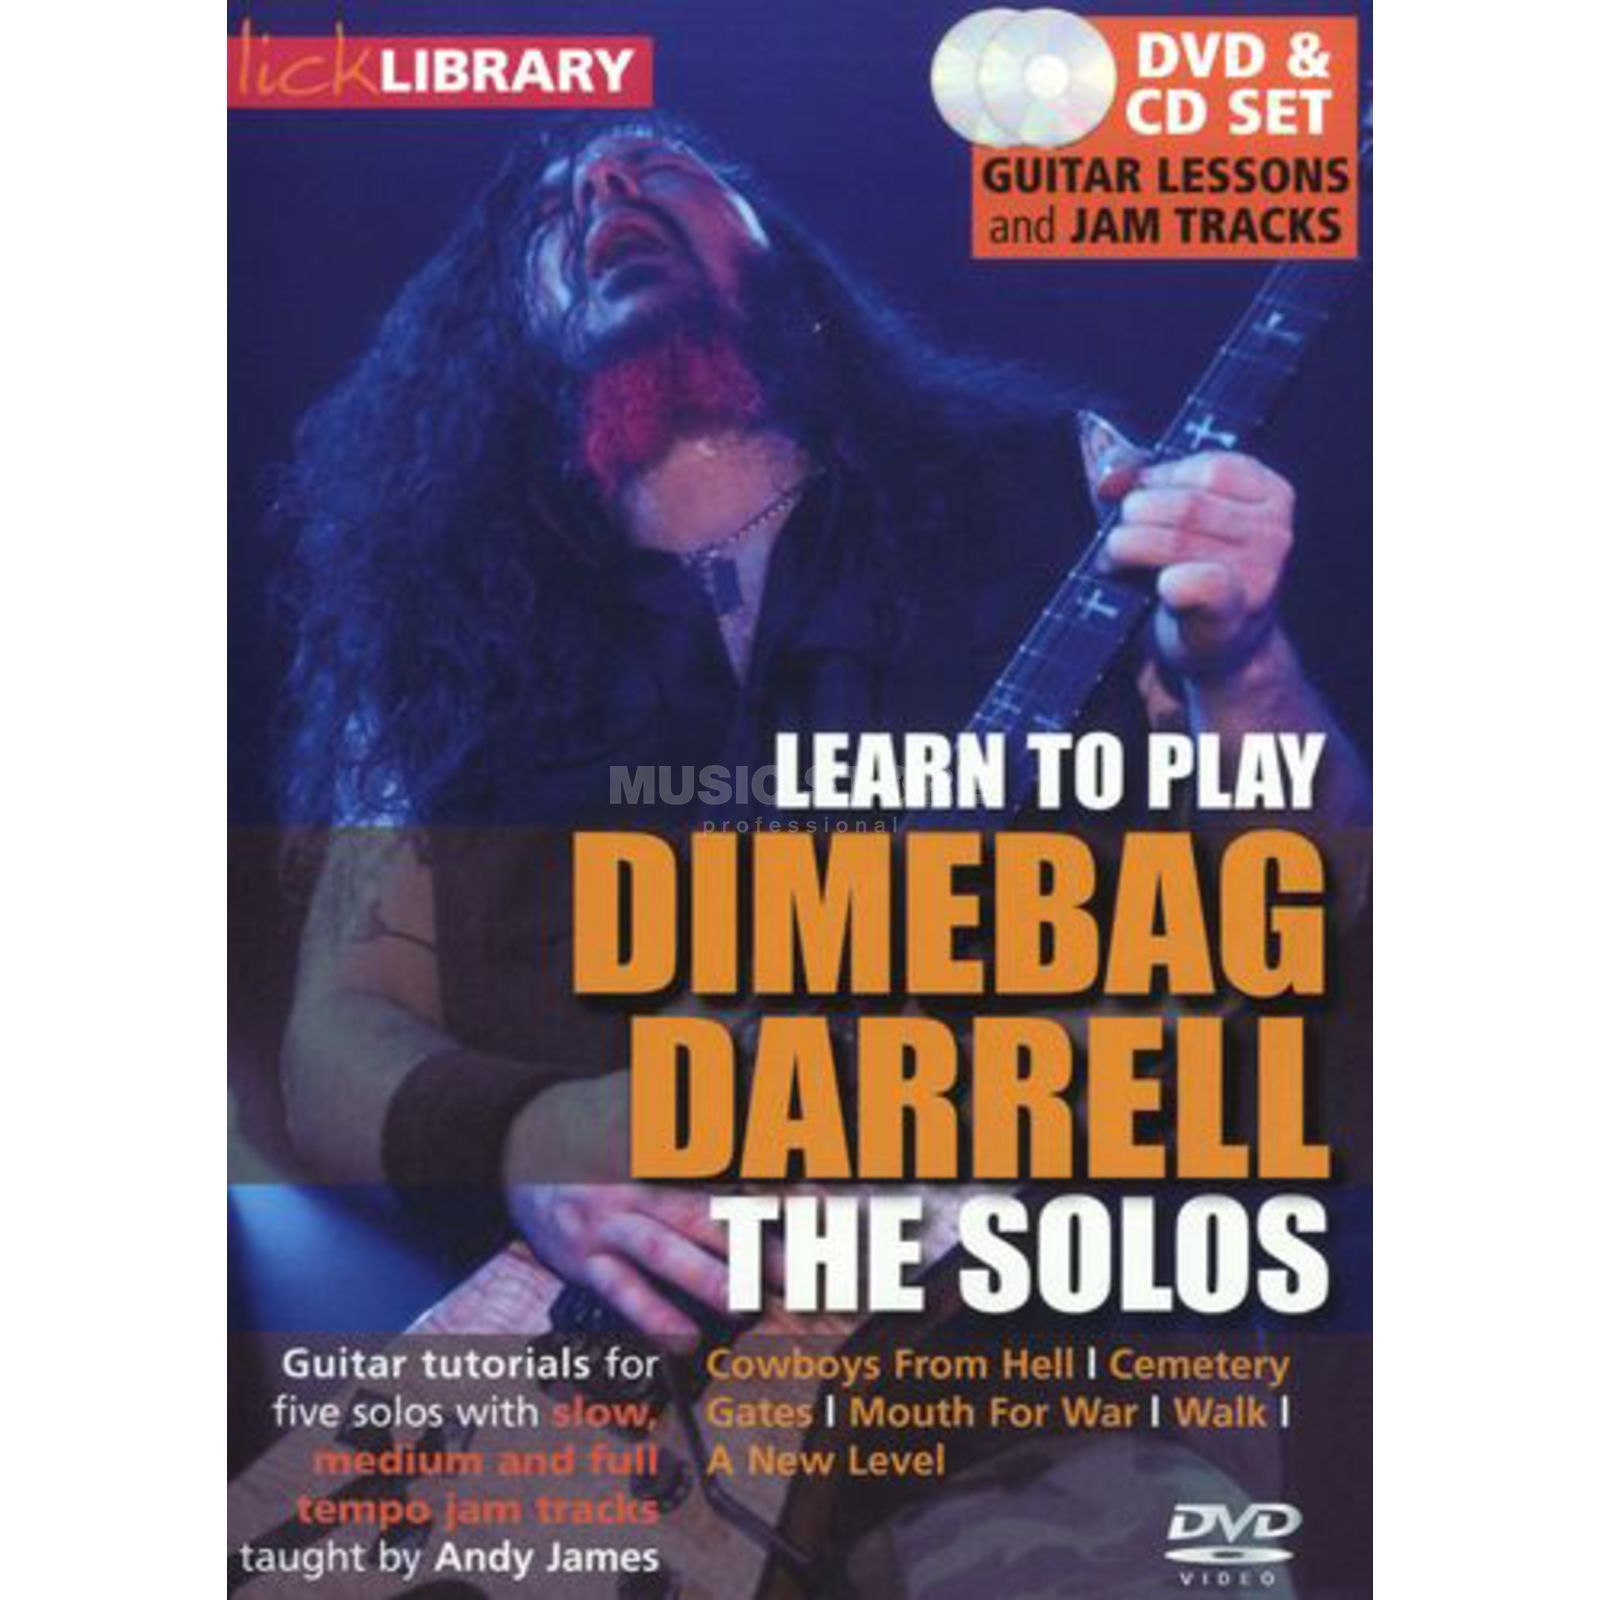 Roadrock International Lick Library: Learn To Play Dimebag Darrell - The Solos DVD Produktbild